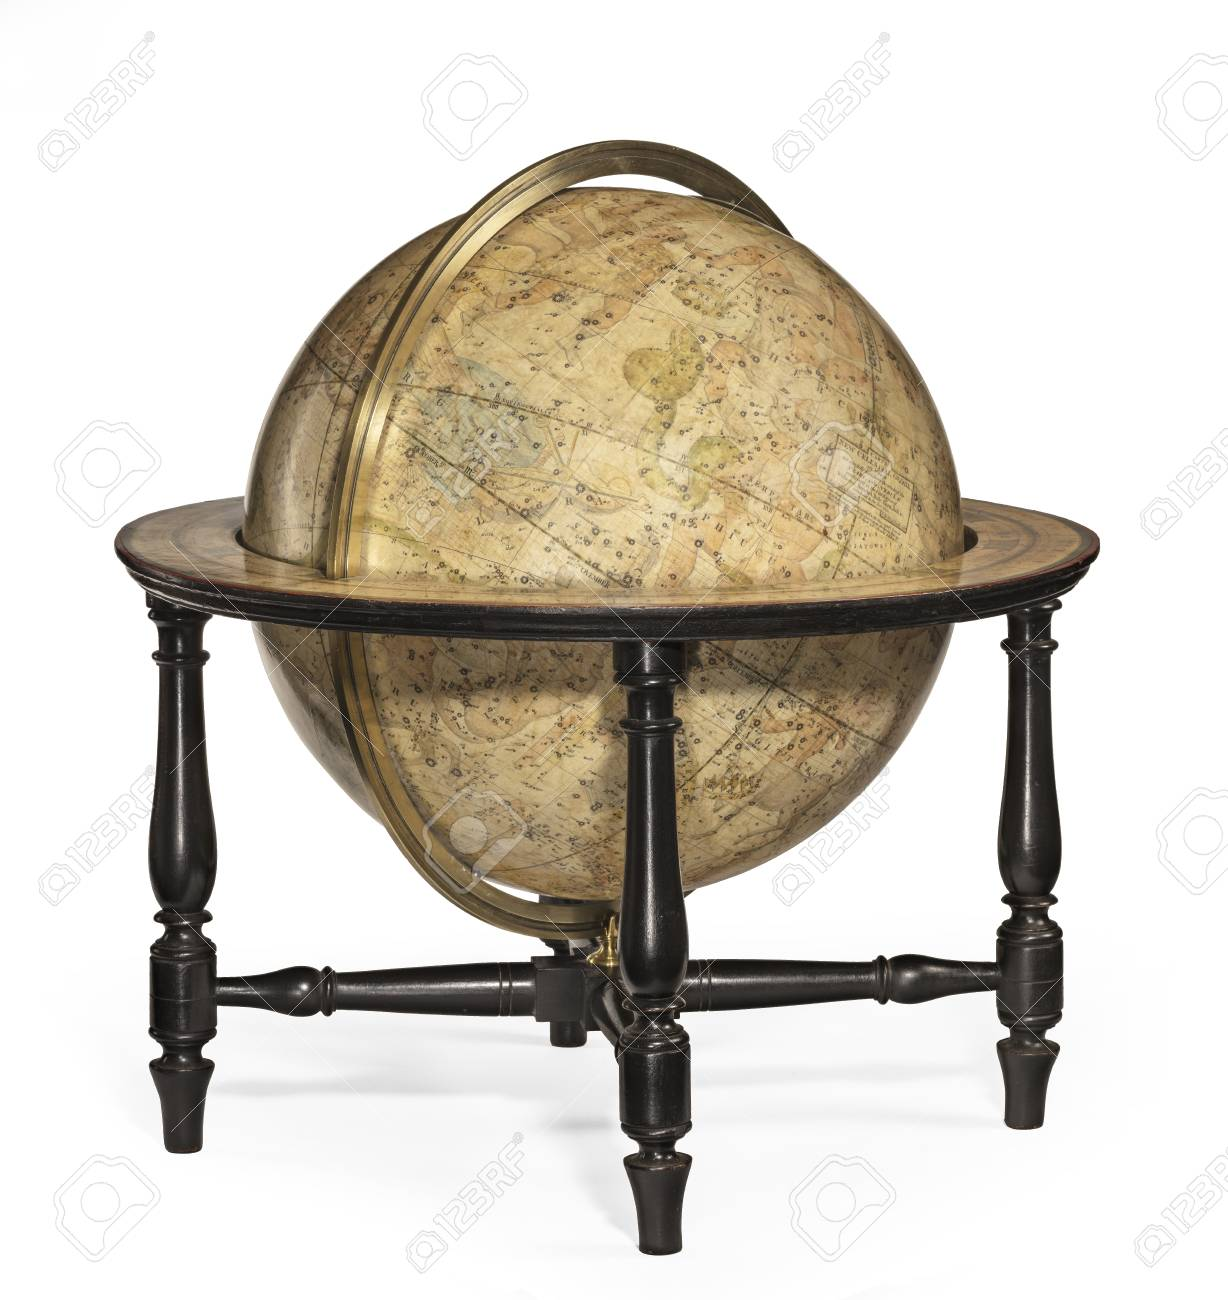 Old Antique Globe Small For The Desk Or Table Stock Photo Picture